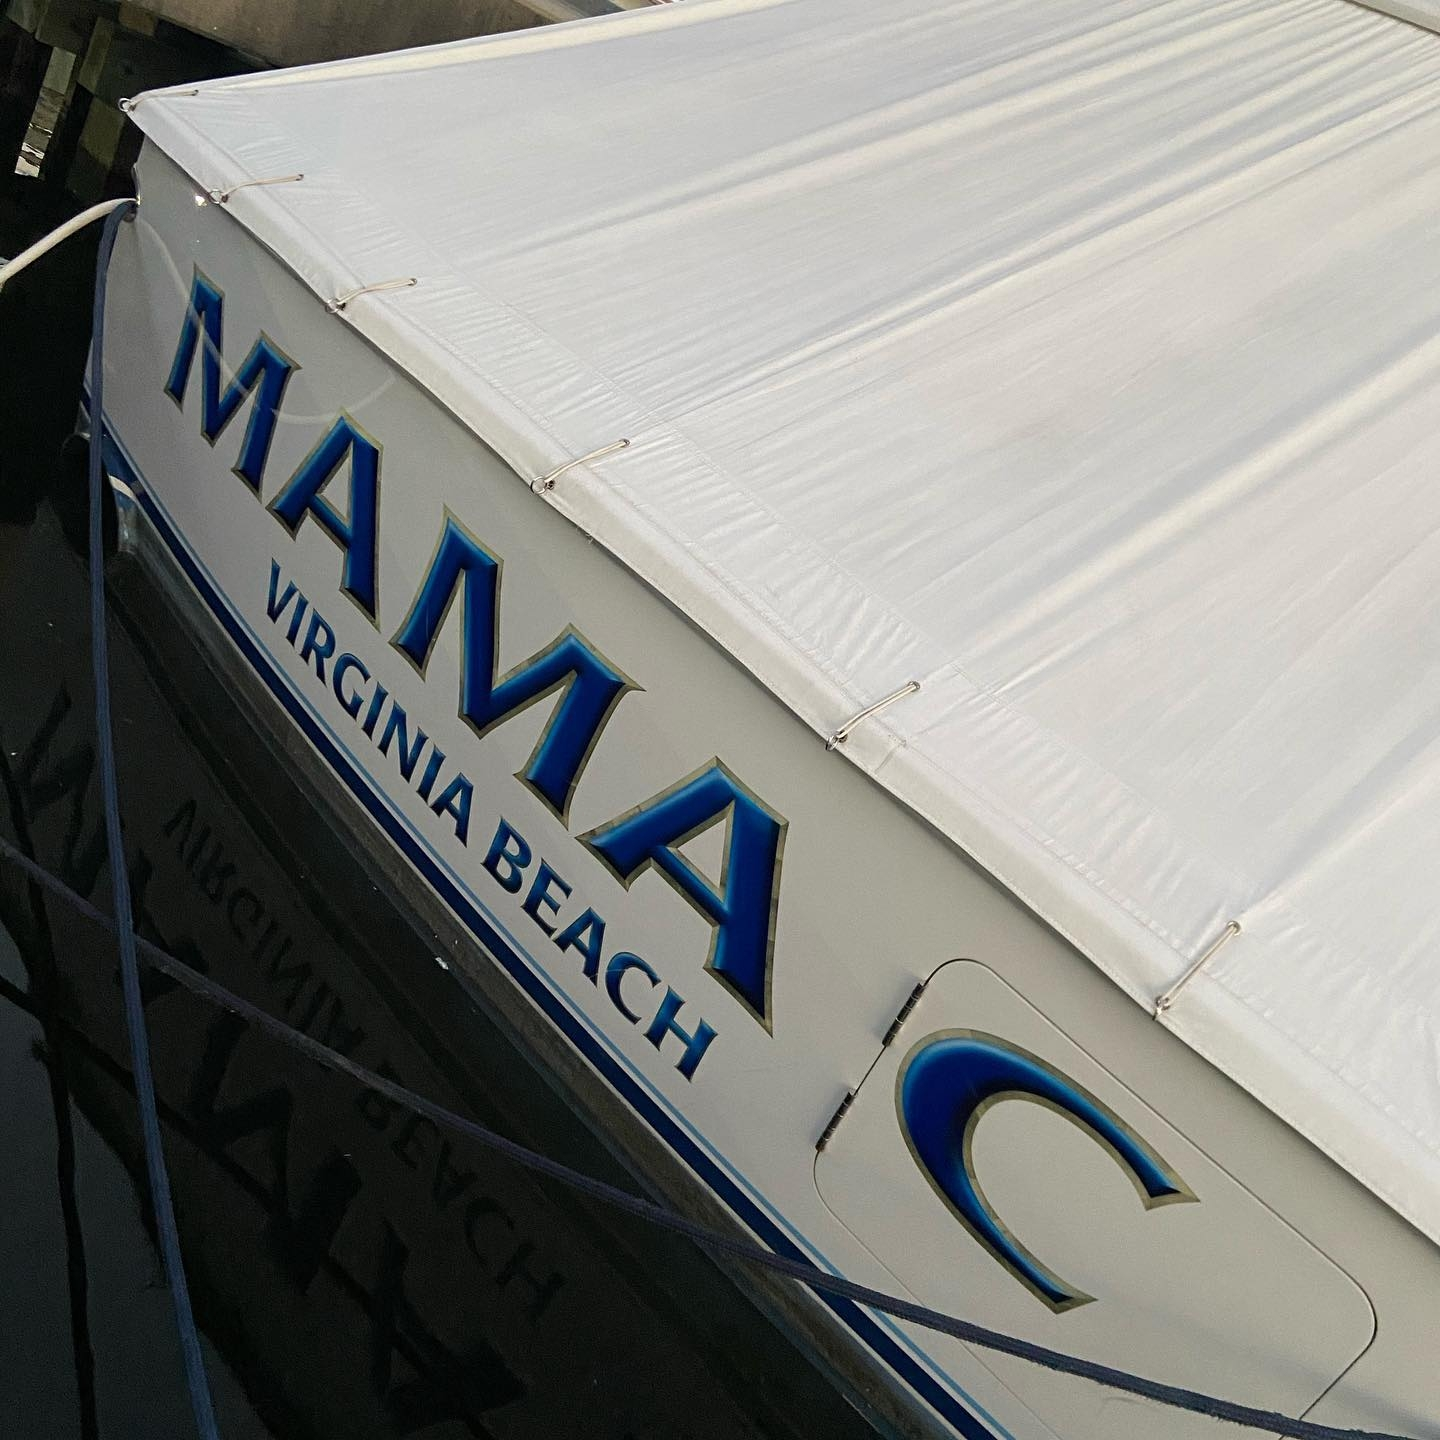 Mama C is a 60' Bayliss sport fishing boat painted by Everett Nautical. This name features a blue highlight and shadow letter fill with white gold leaf outlines. All work completed at Bayliss Boatworks, Wanchese, NC.